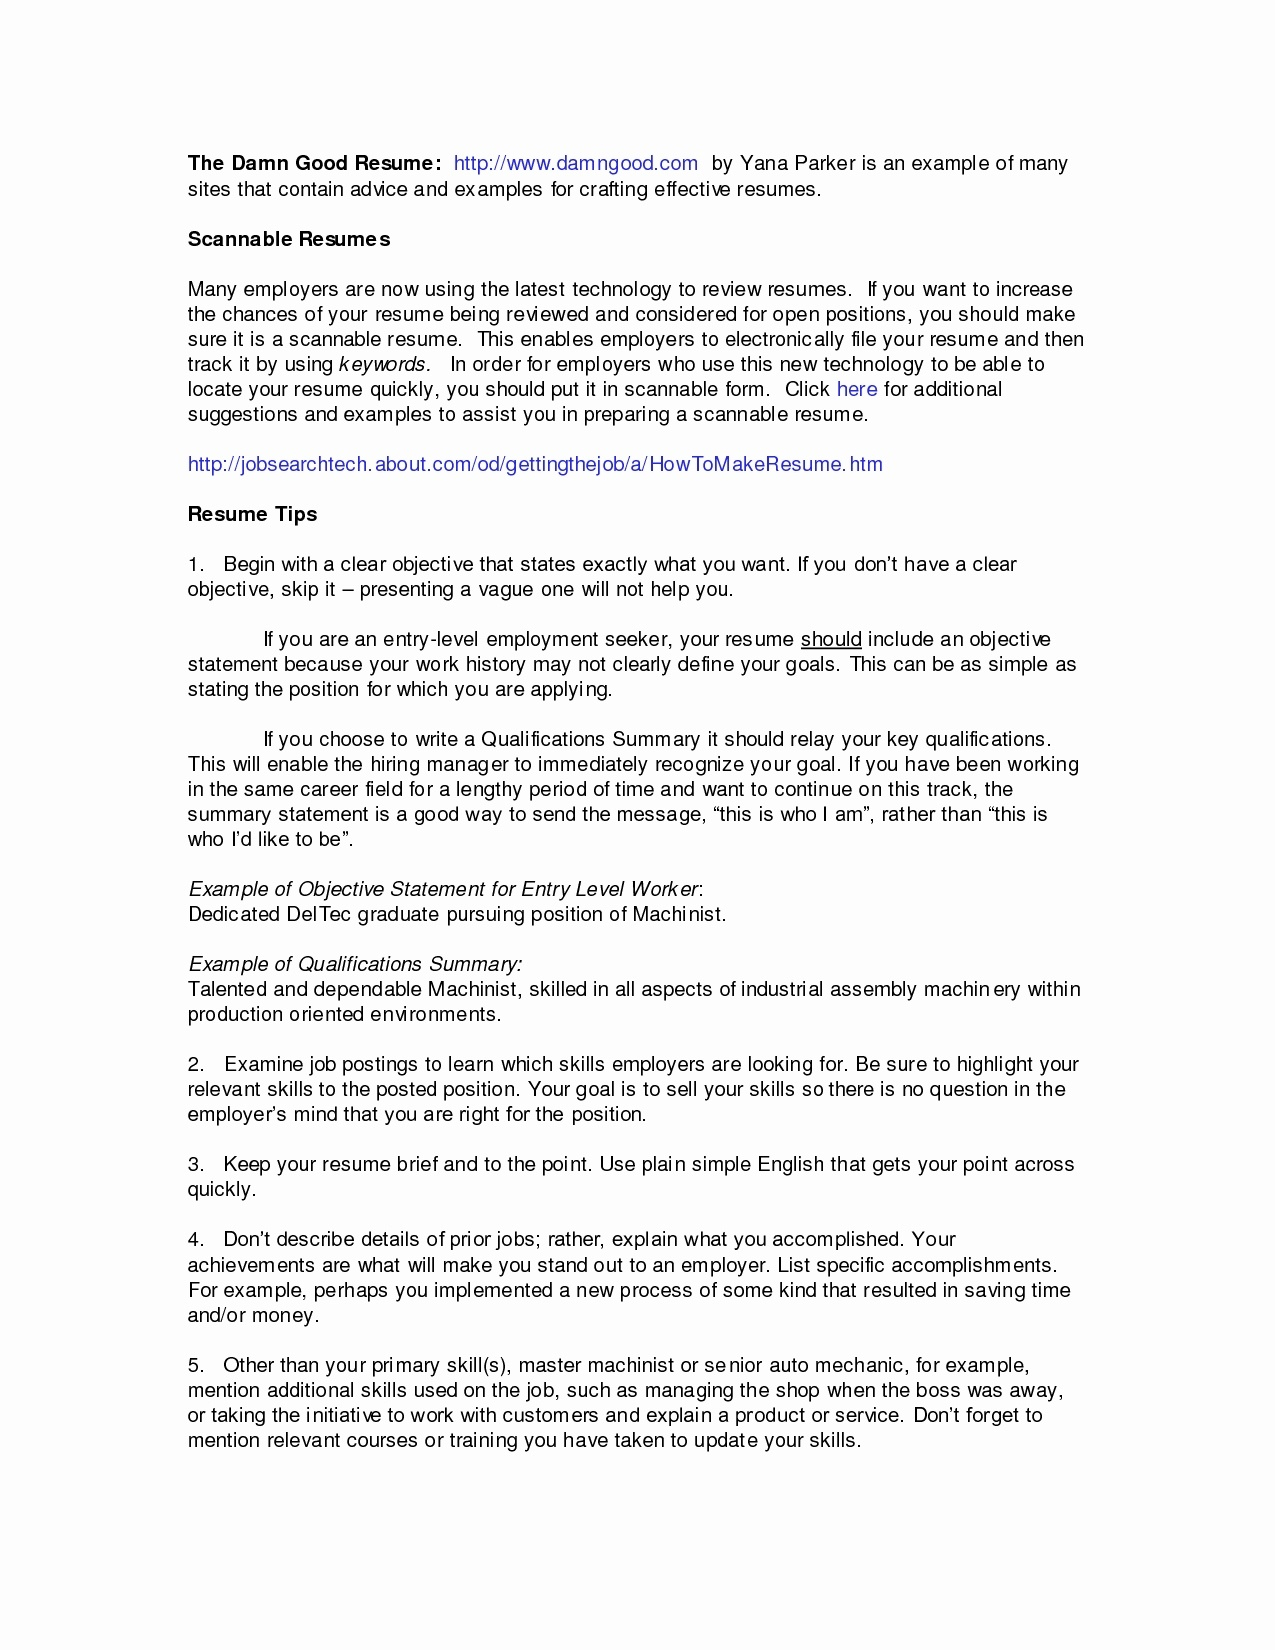 Employment History Resume - Interest Section Resume Examples Fresh Sample Hobbies and